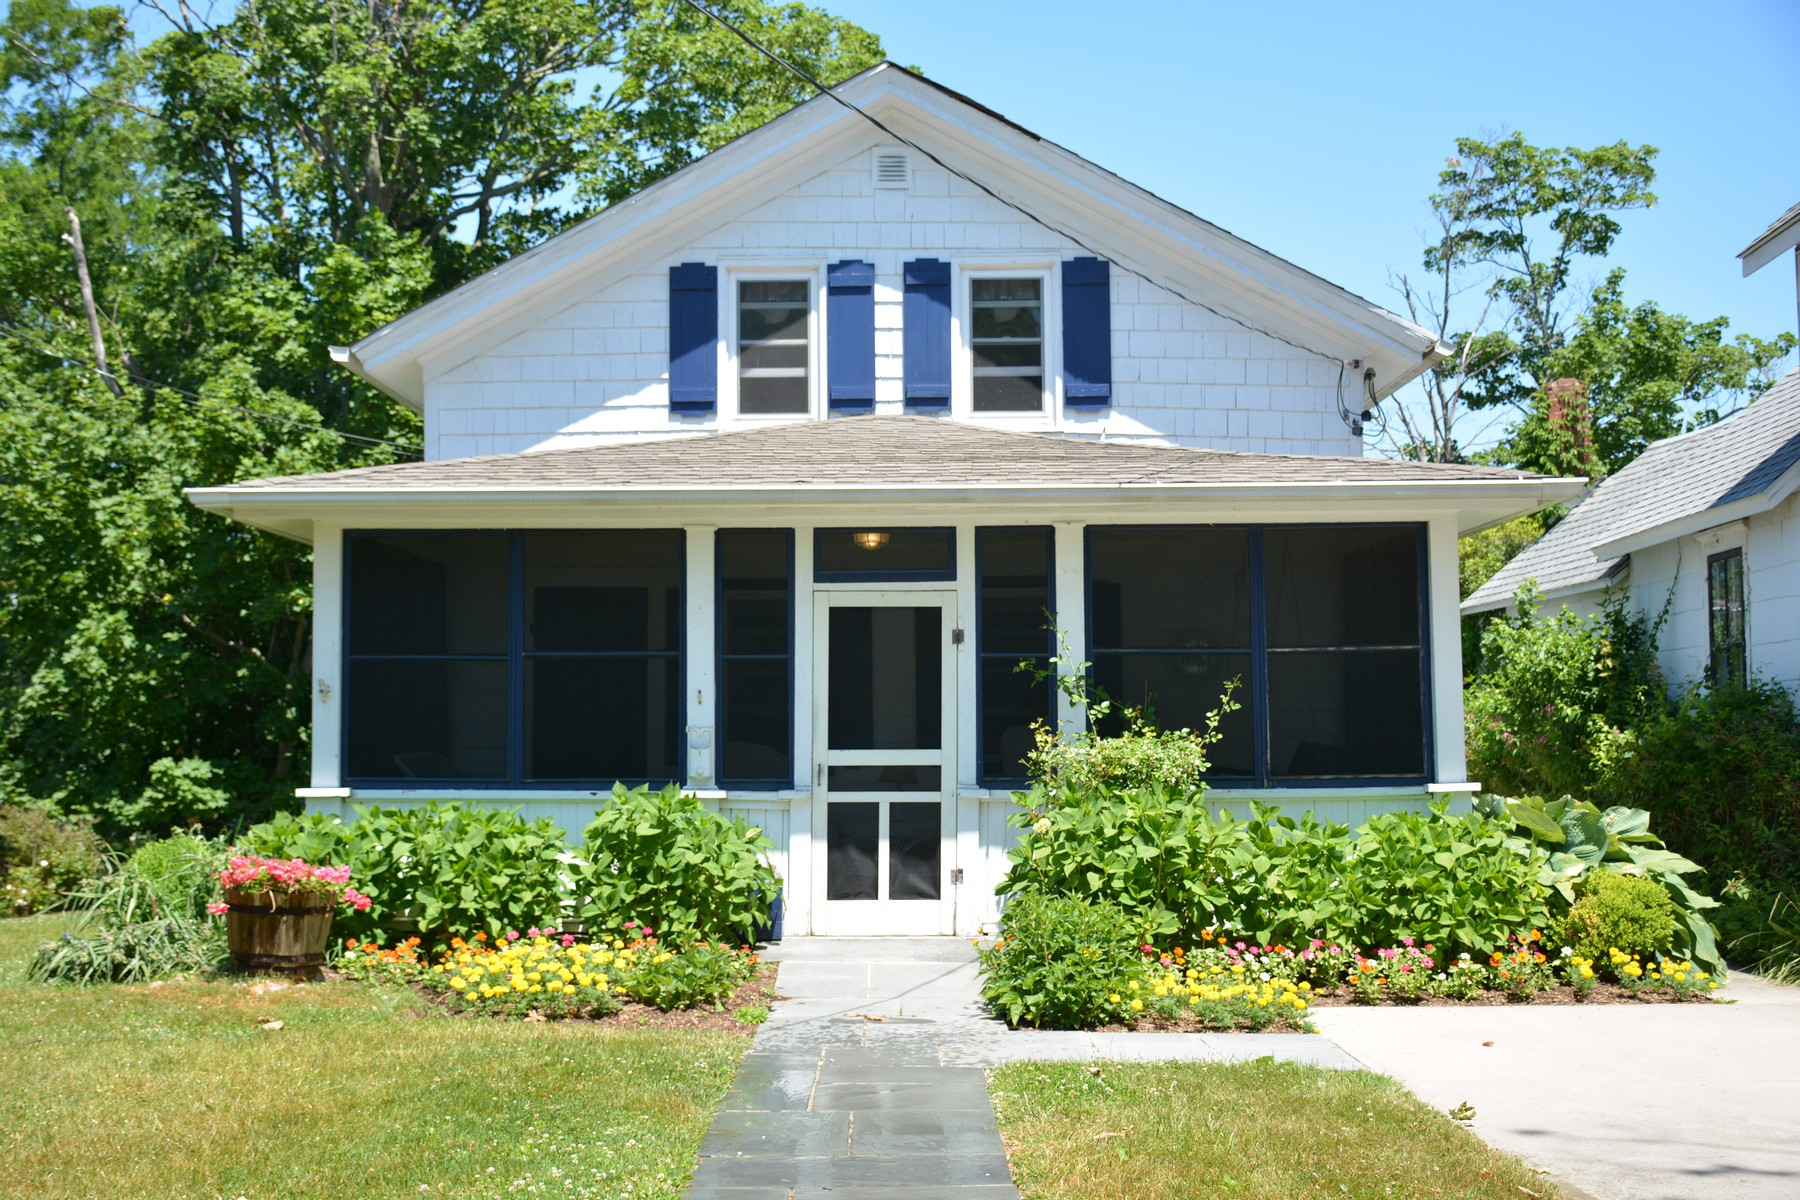 Single Family Home for Sale at Farmhouse 314 Atlantic Ave Greenport, New York, 11944 United States